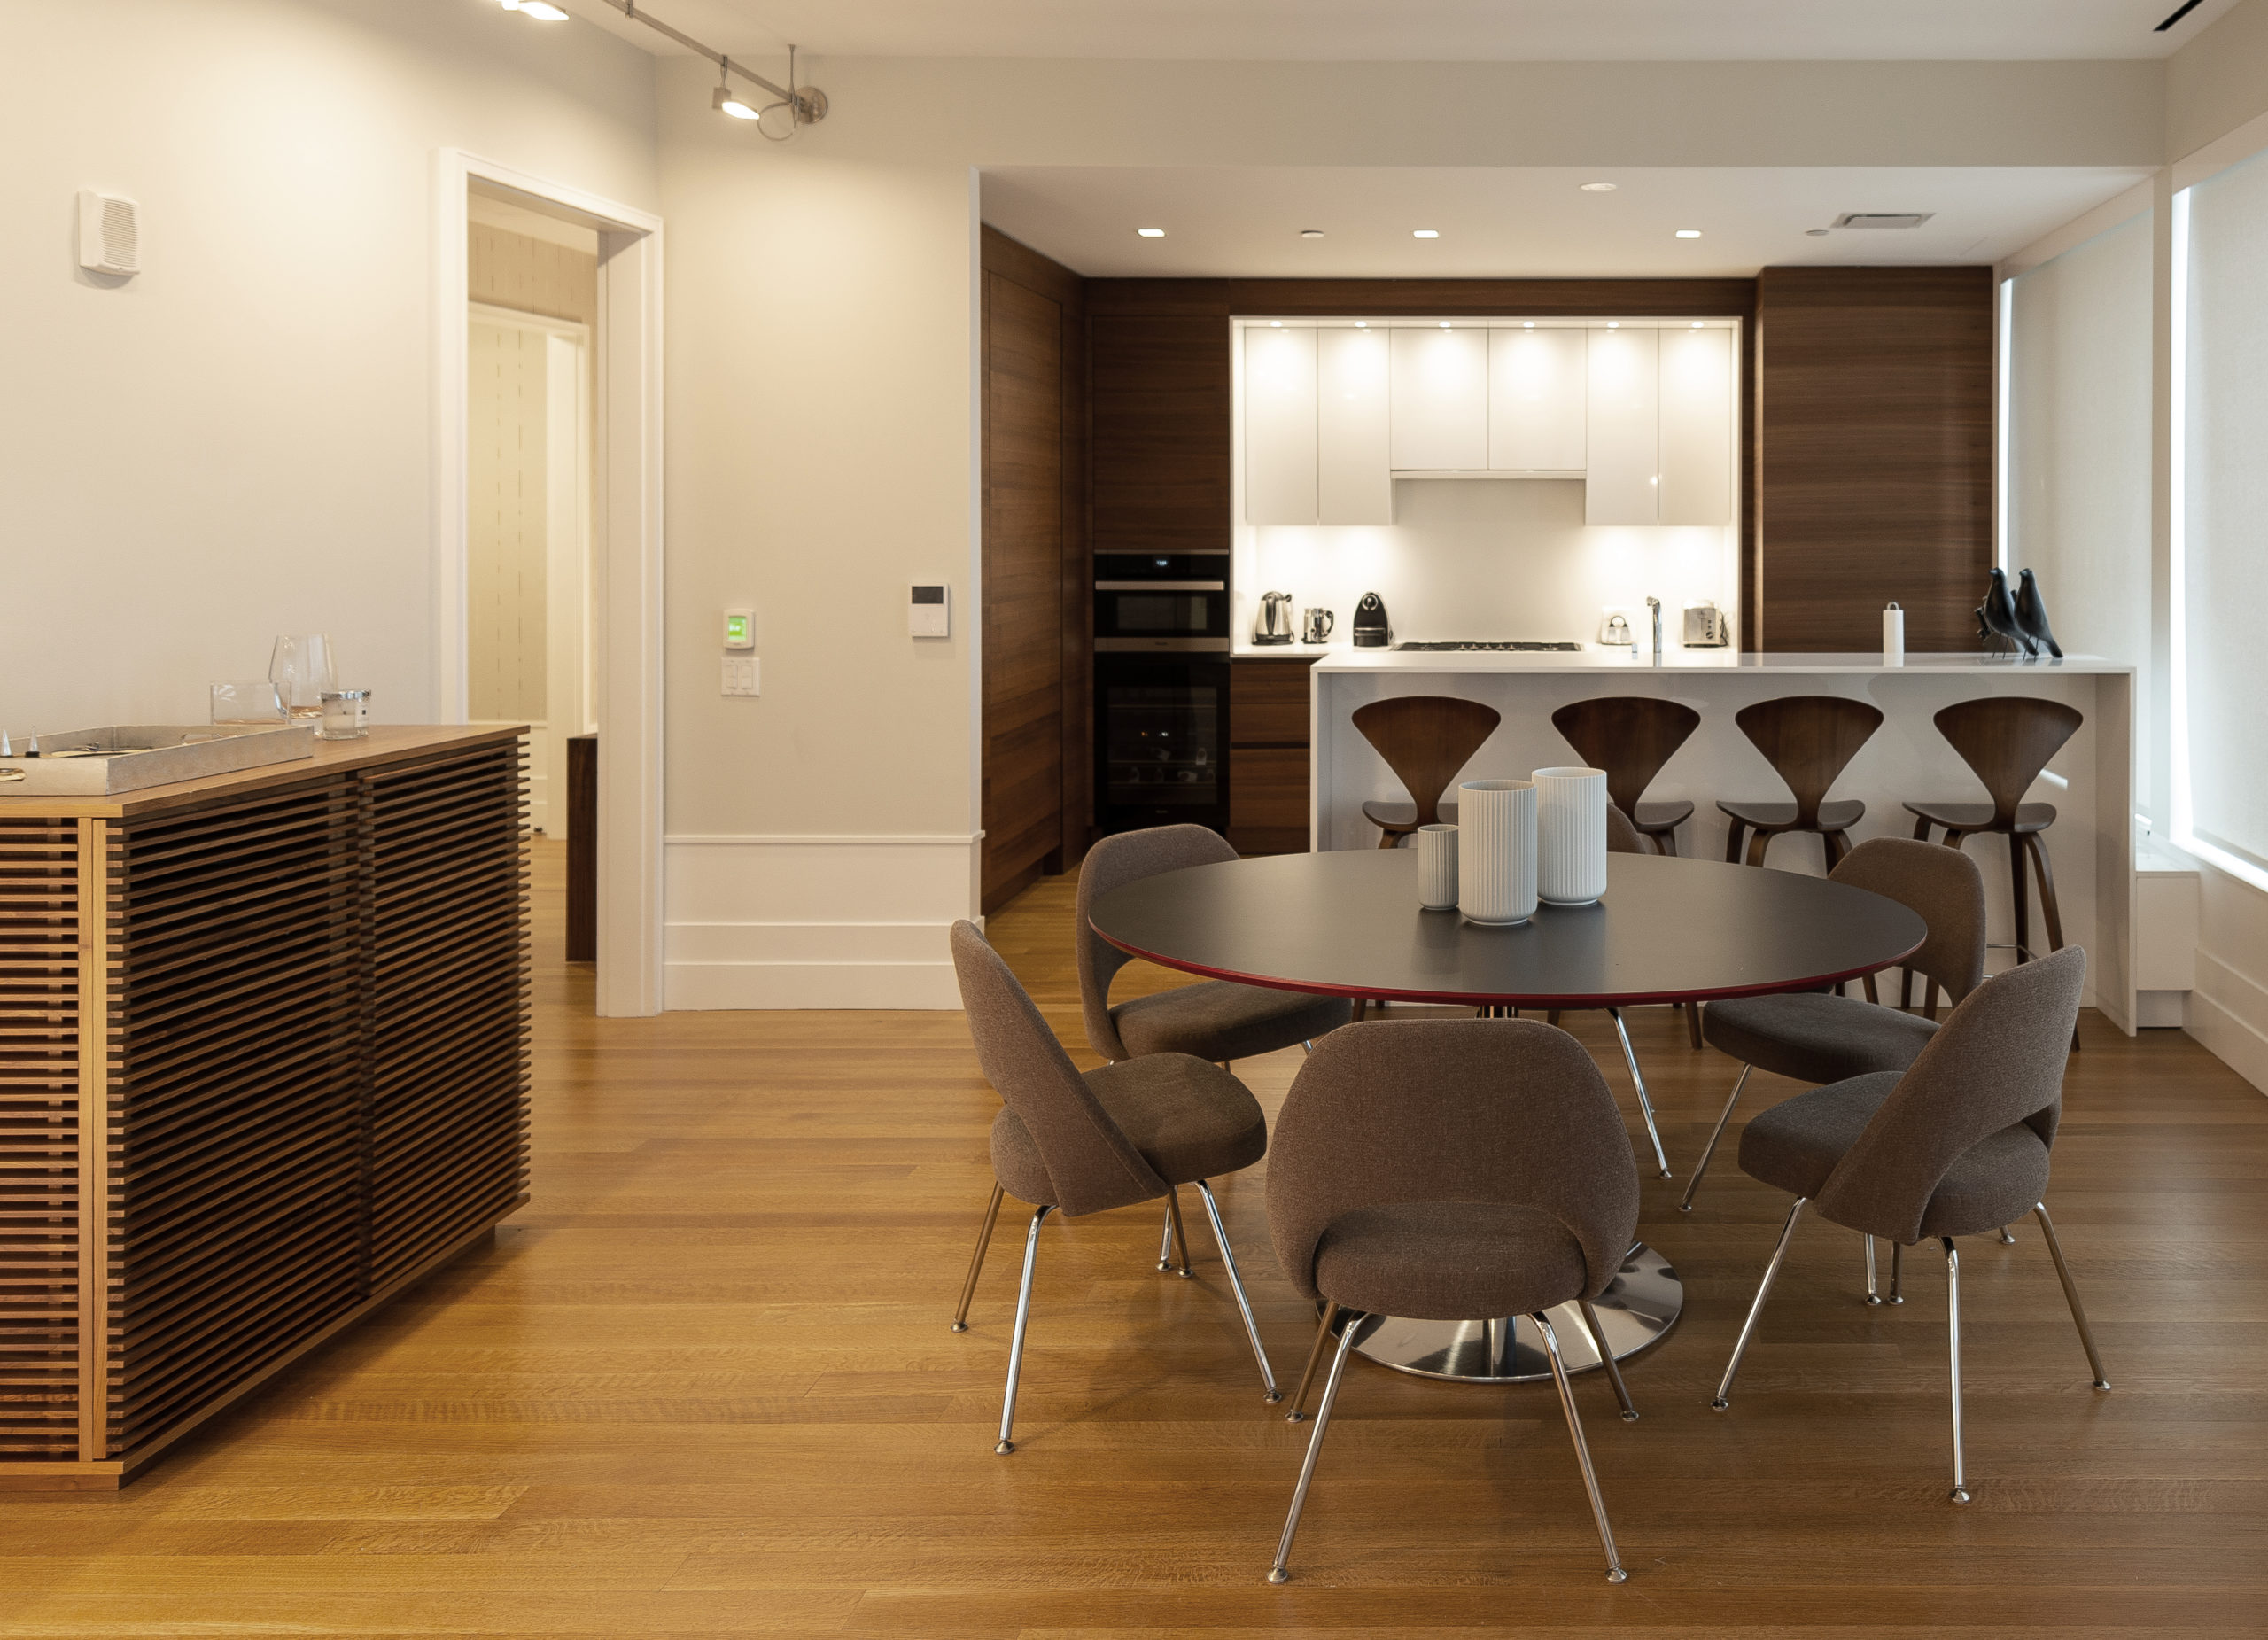 Luxury dining room and kitchen design in Billionaire's row, New York City